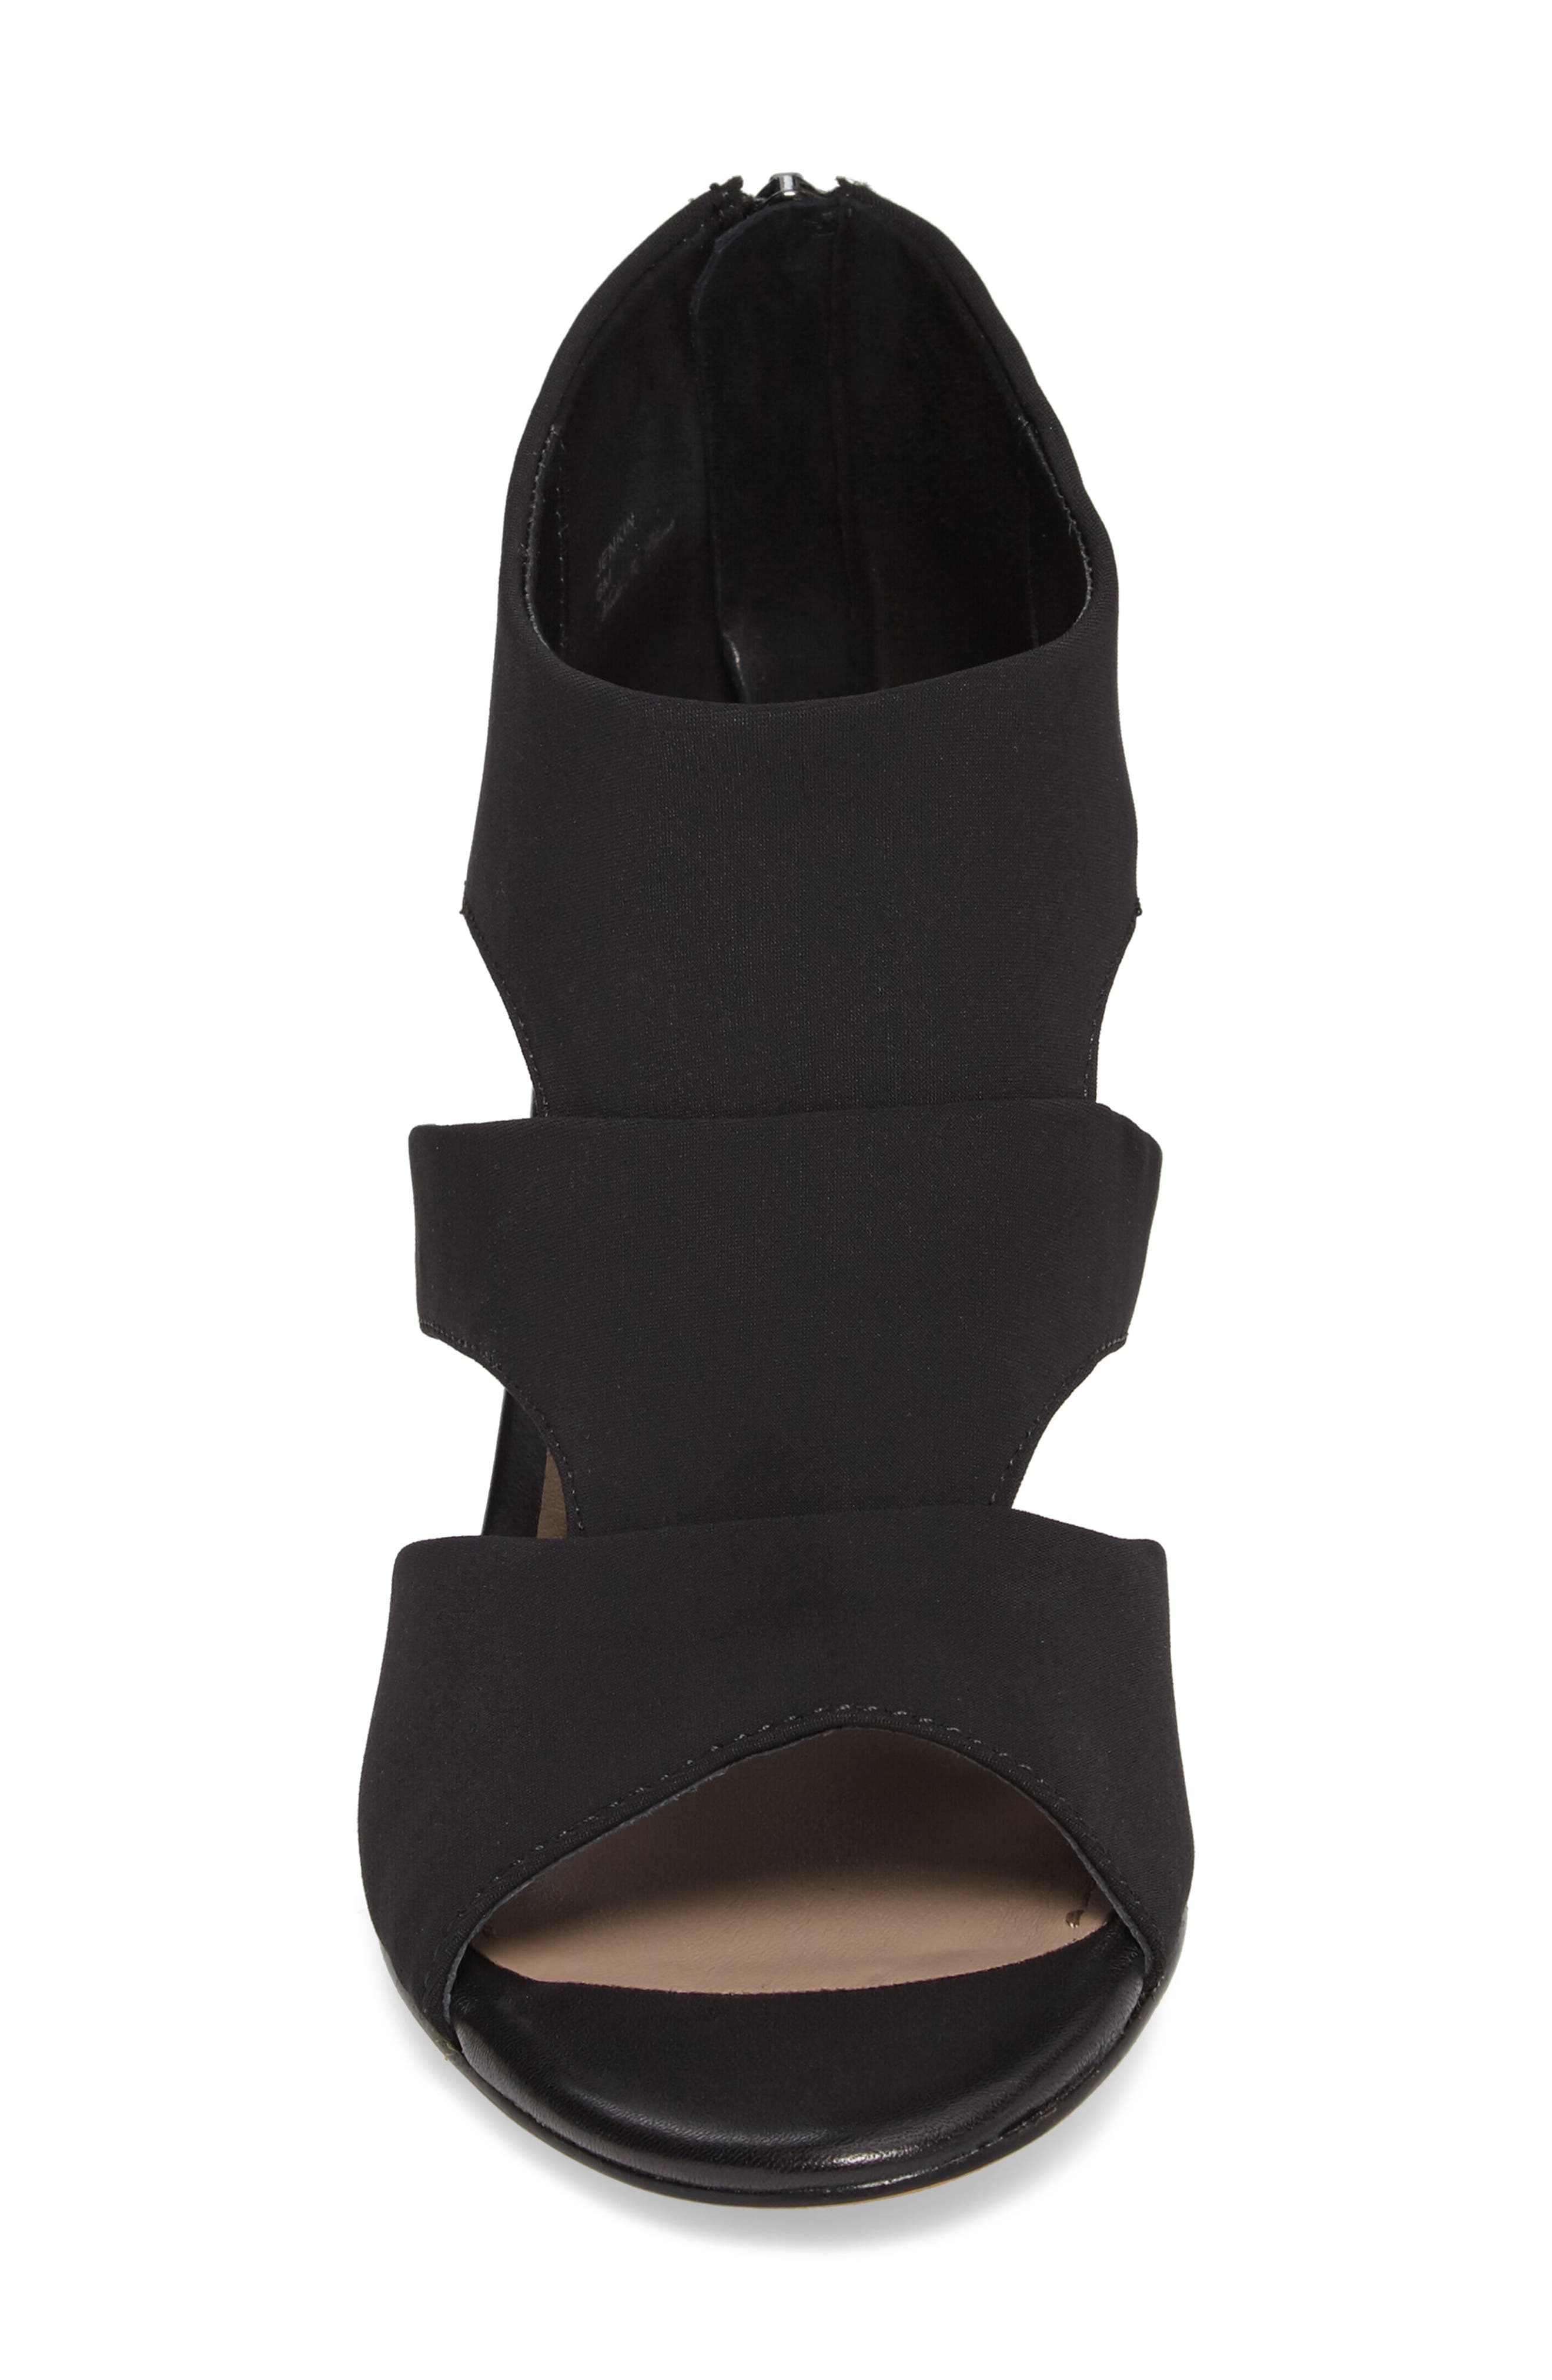 Jenkin Wedge Sandal,                             Alternate thumbnail 4, color,                             002